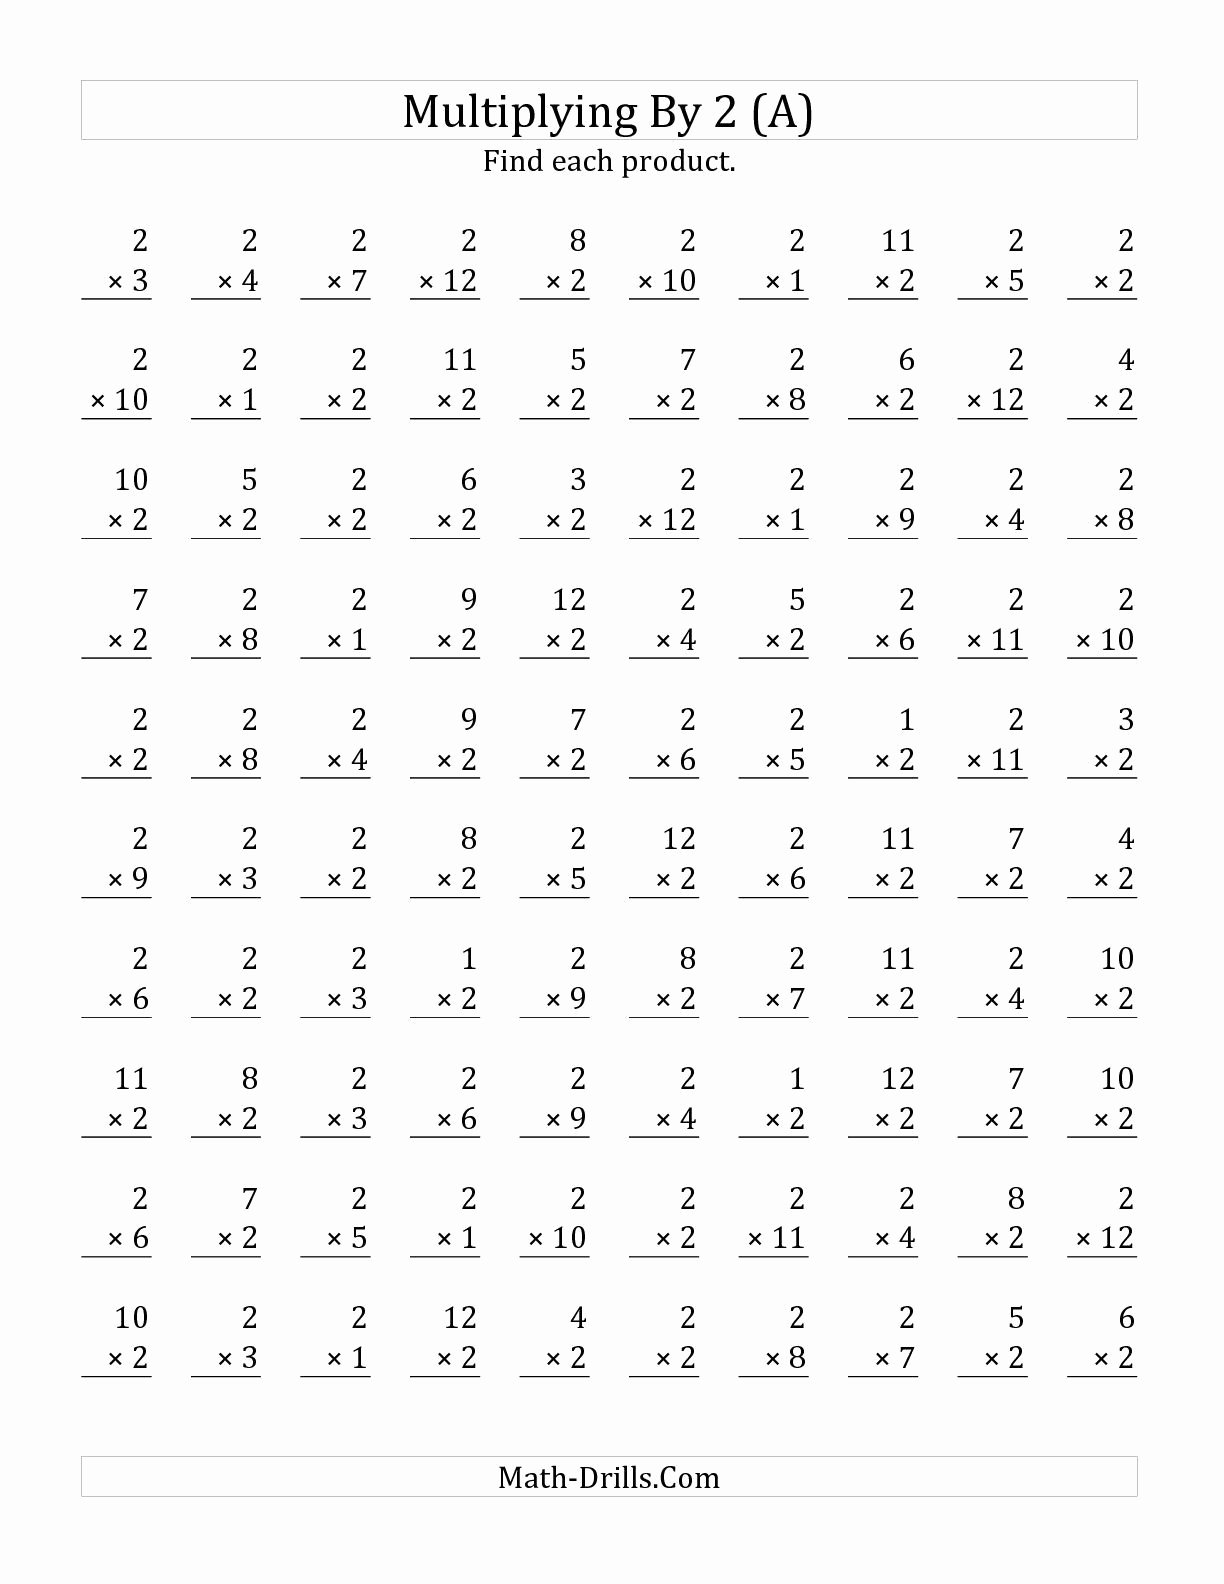 2 Times Multiplication Worksheets Fresh the Multiplying 1 to 12 by 2 A Math Worksheet From the